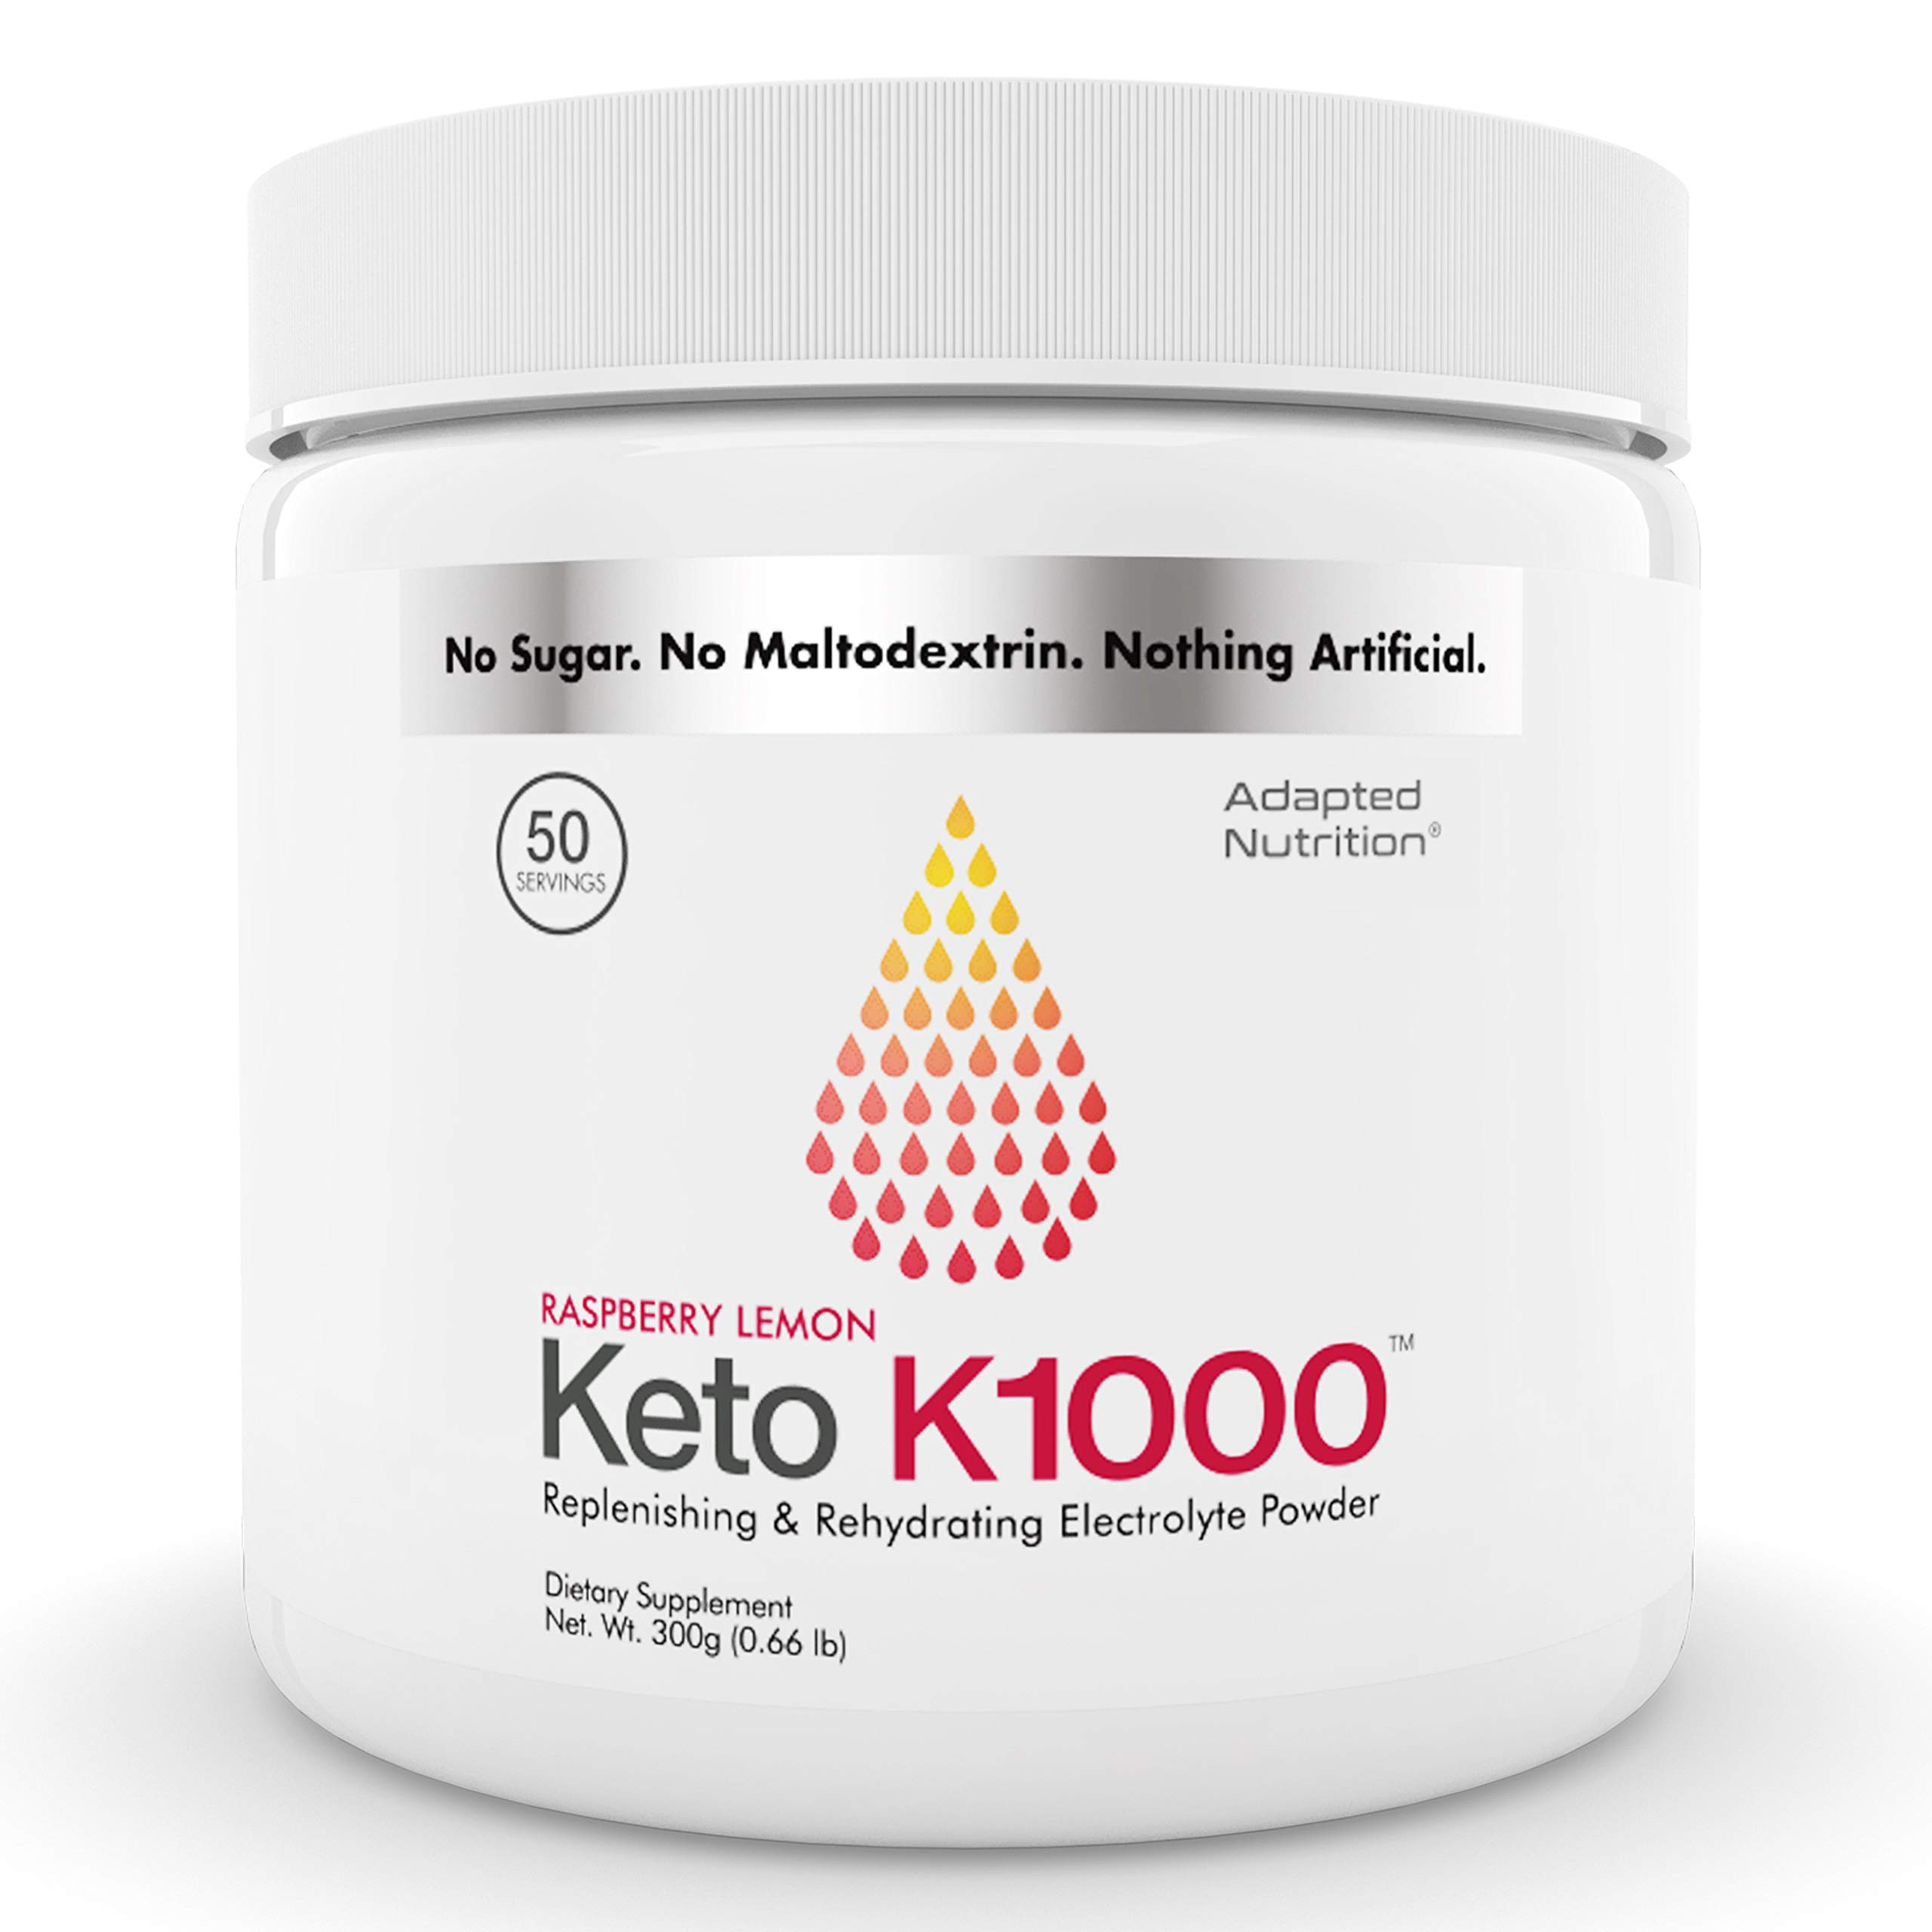 Keto K1000 Electrolyte Powder | Boost Energy & Beat Leg Cramps | No Maltodextrin or Sugar | Raspberry Lemon | 50 Servings by Hi-Lyte